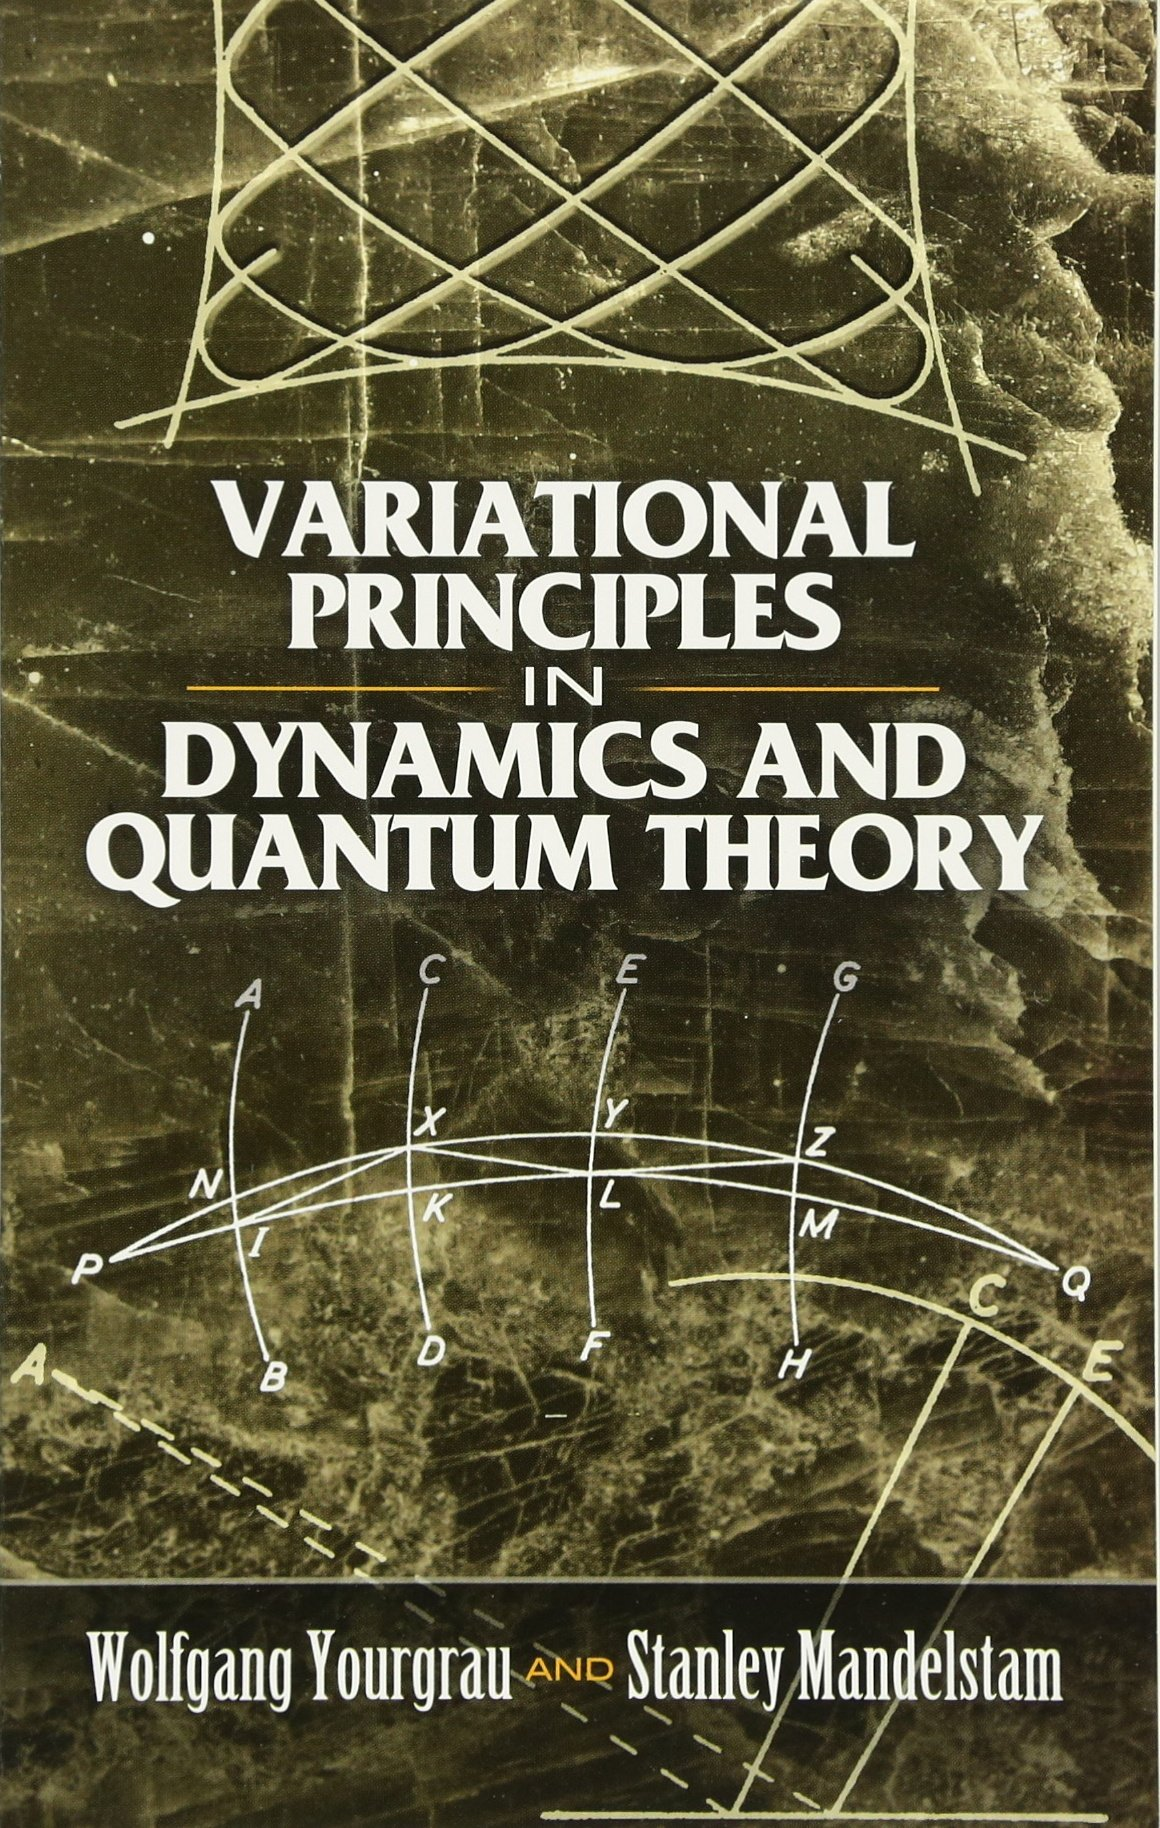 Variational Principles in Dynamics and Quantum Theory (Dover Books on Physics) PDF